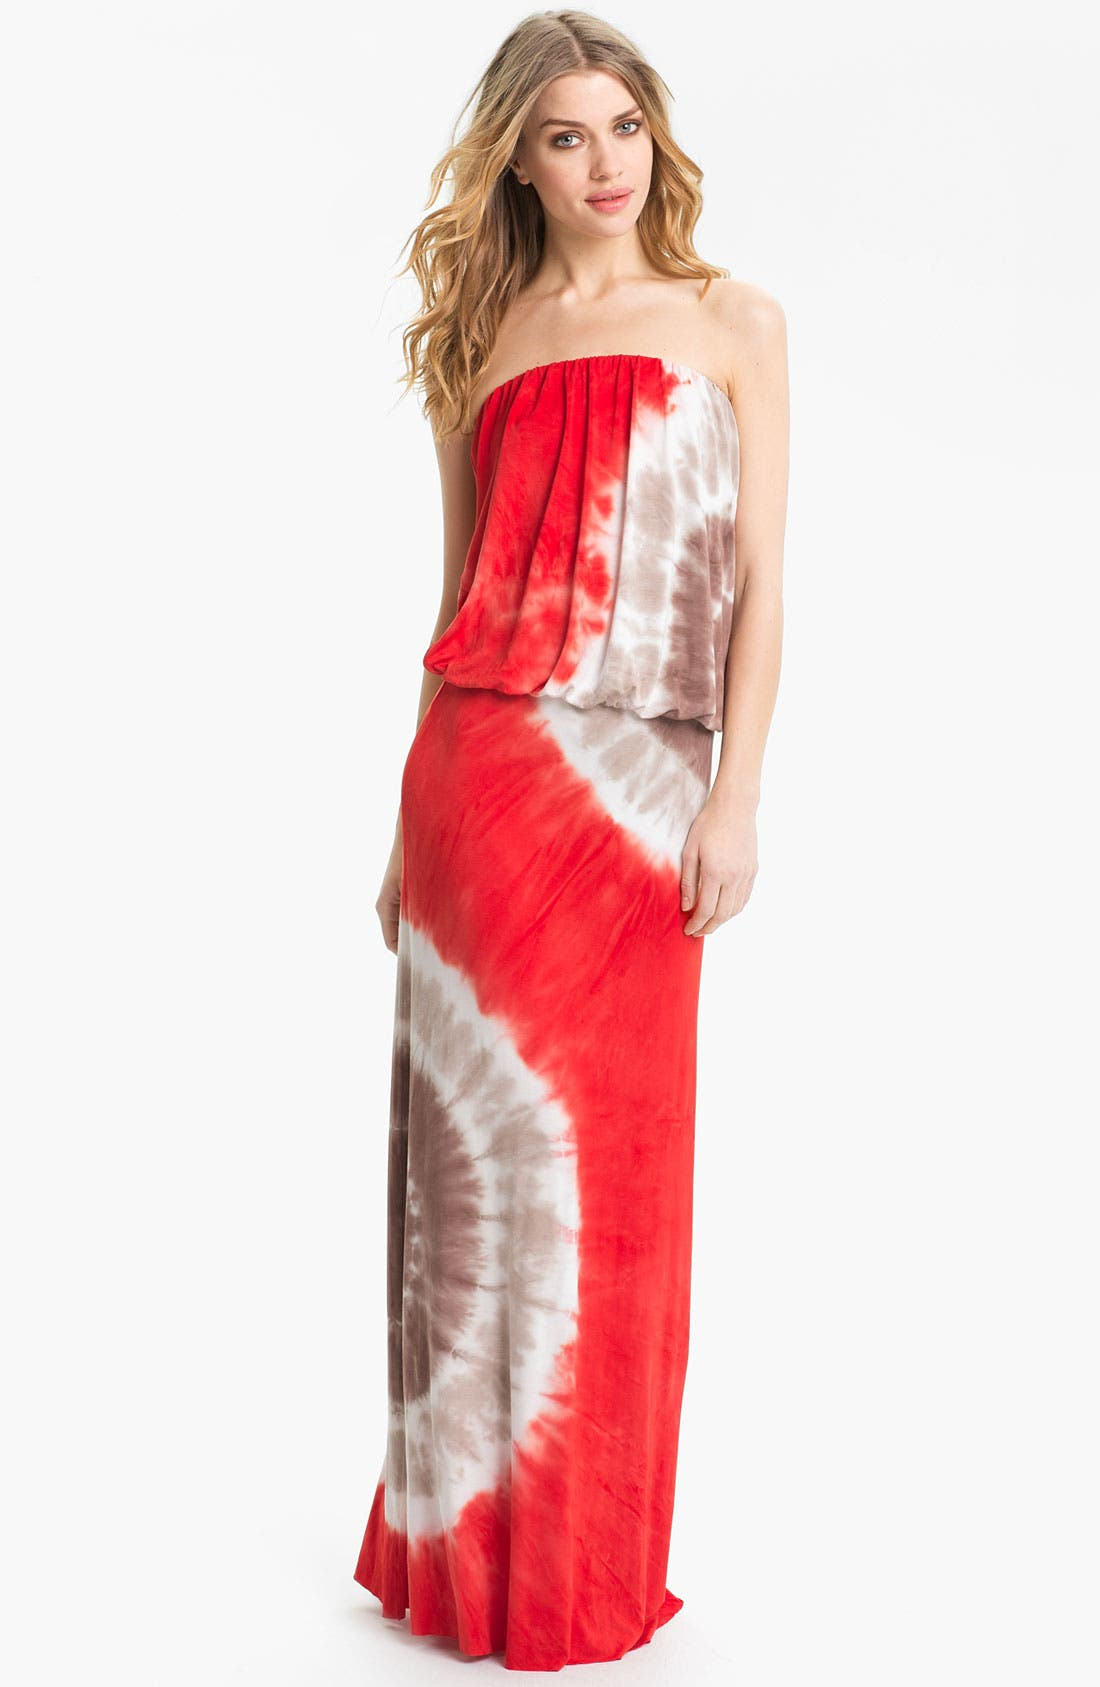 Main Image - Young, Fabulous & Broke 'Sydney' Strapless Maxi Dress